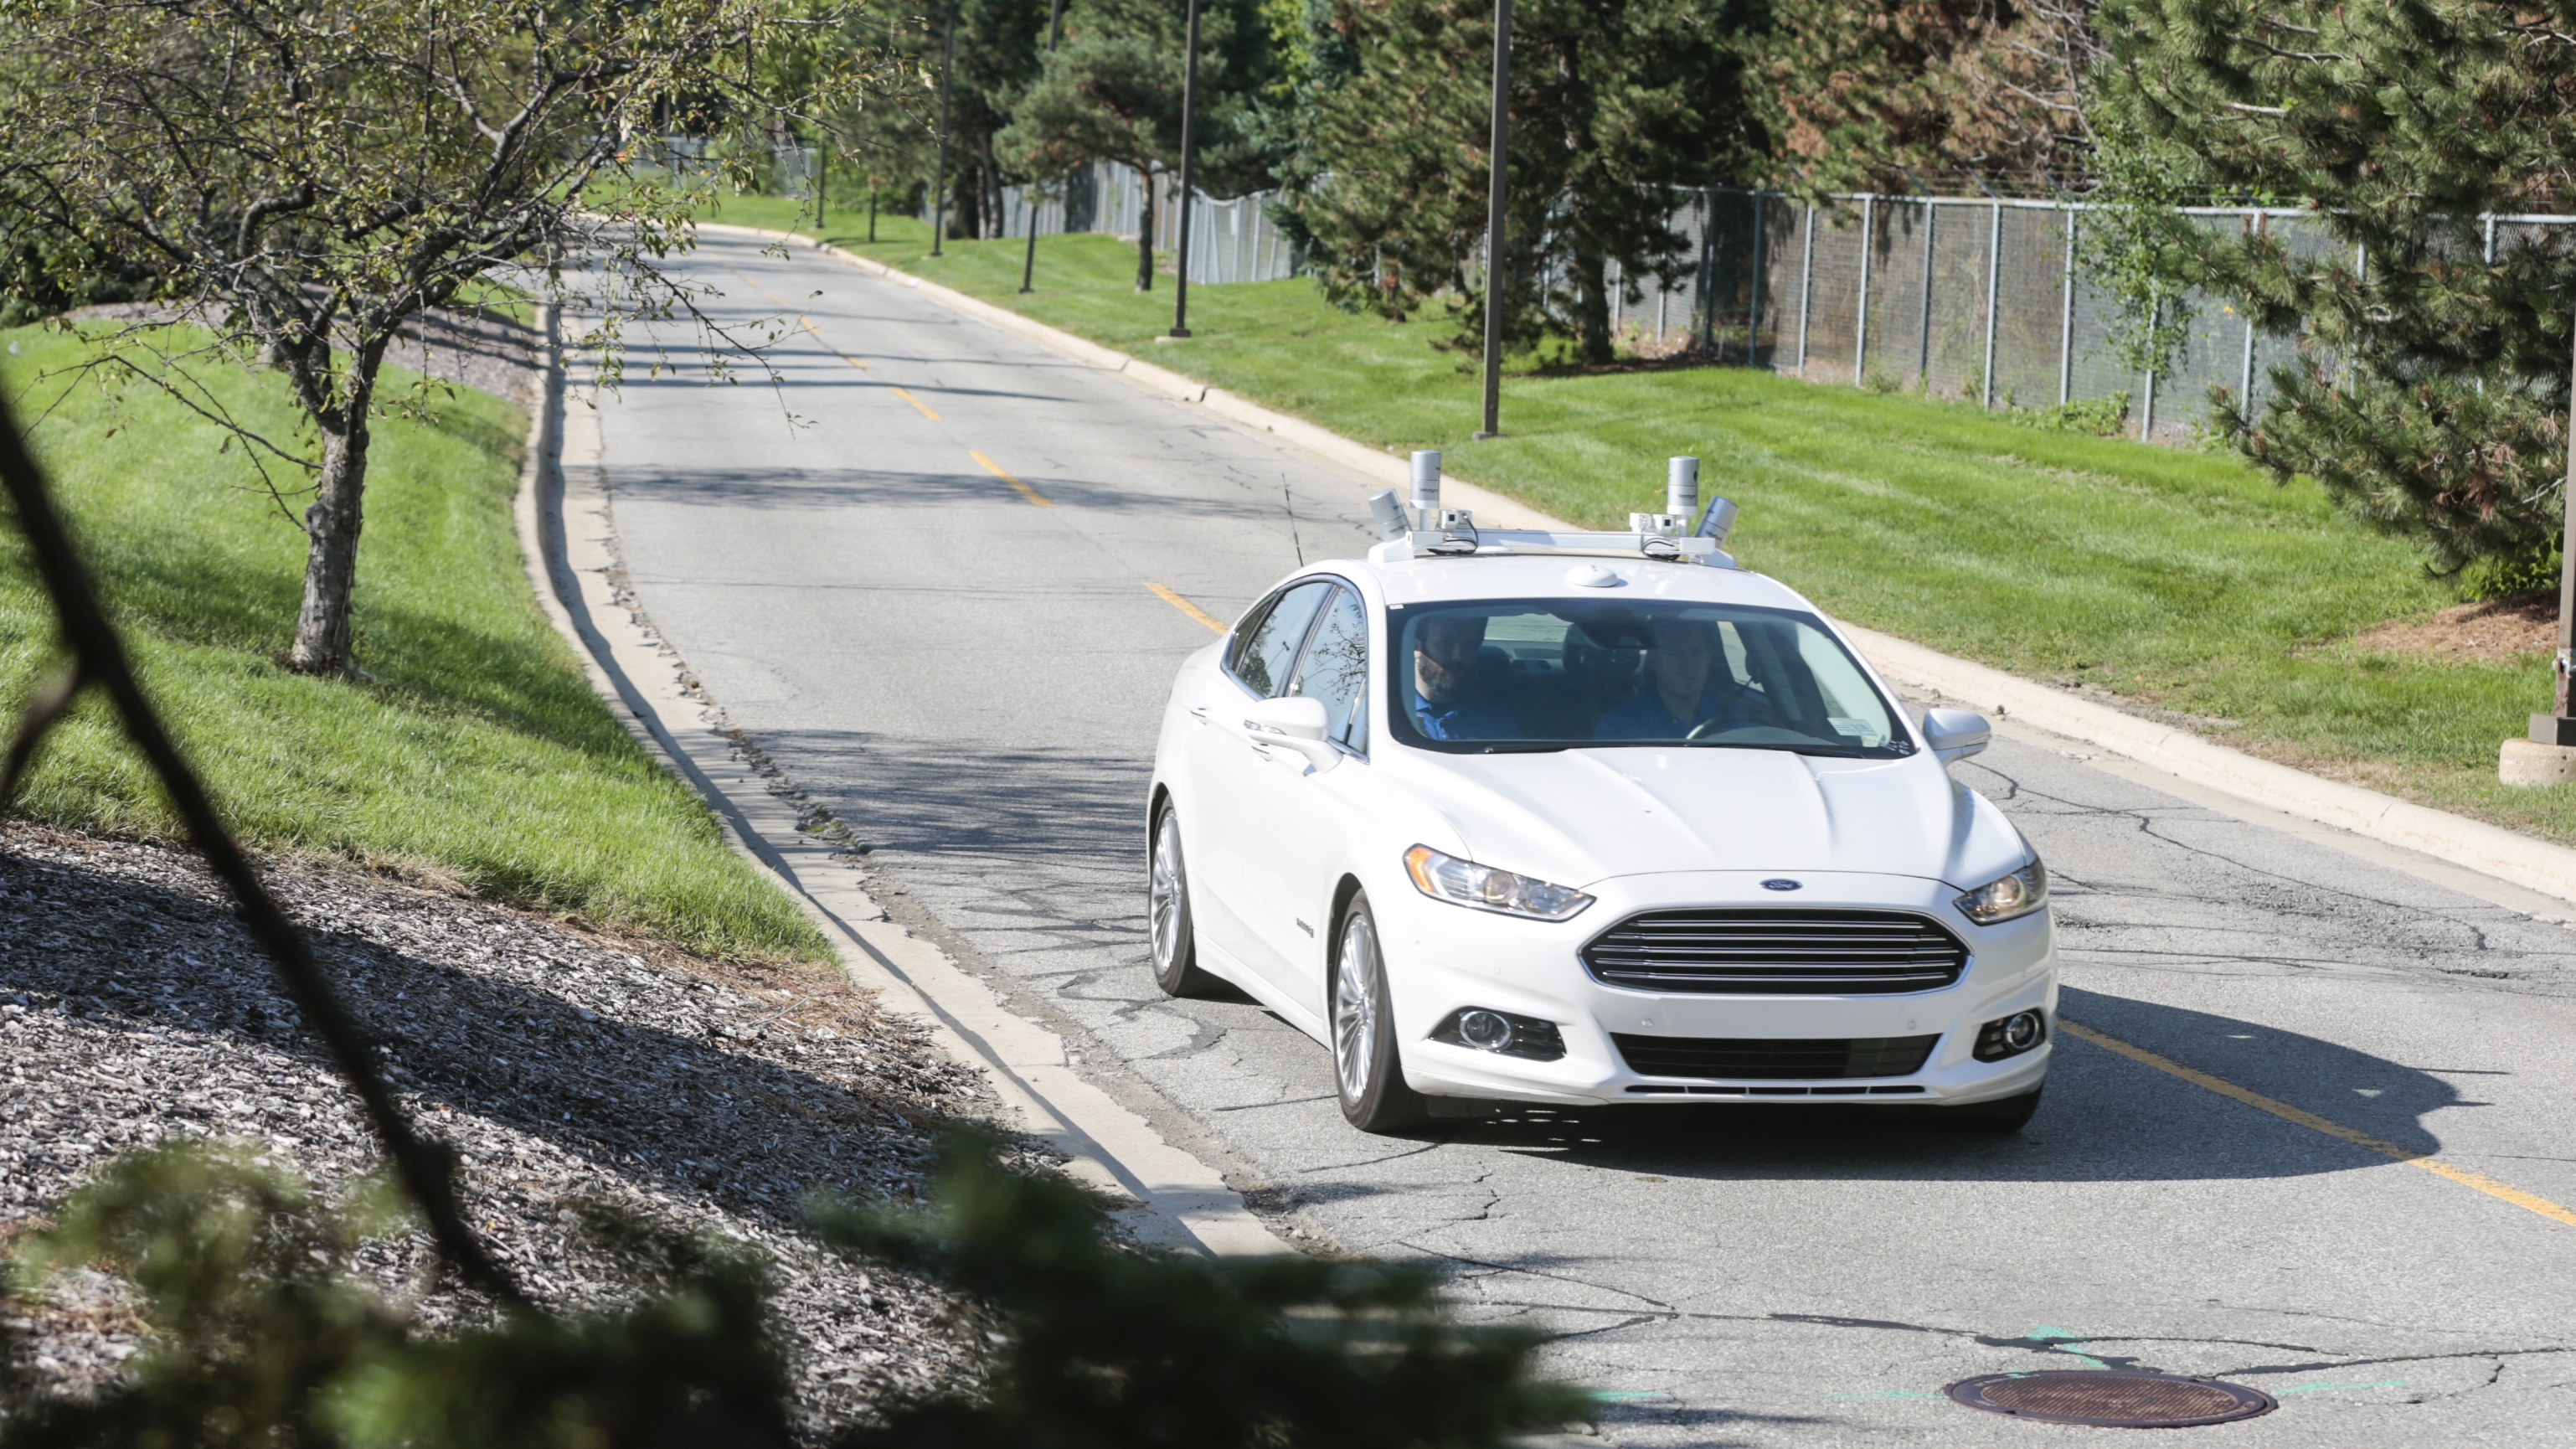 Ford's fully autonomous Fusion Hybrid research vehicle on the streets of Dearborn, Mich. Ford has been researching autonomous vehicles for more than a decade and currently tests fully autonomous vehicles in Michigan, Arizona and California. Ford recently announced its intent to have a high-volume, fully autonomous SAE level 4-capable vehicle in commercial operation in 2021 in a ride-hailing or ride-sharing service.